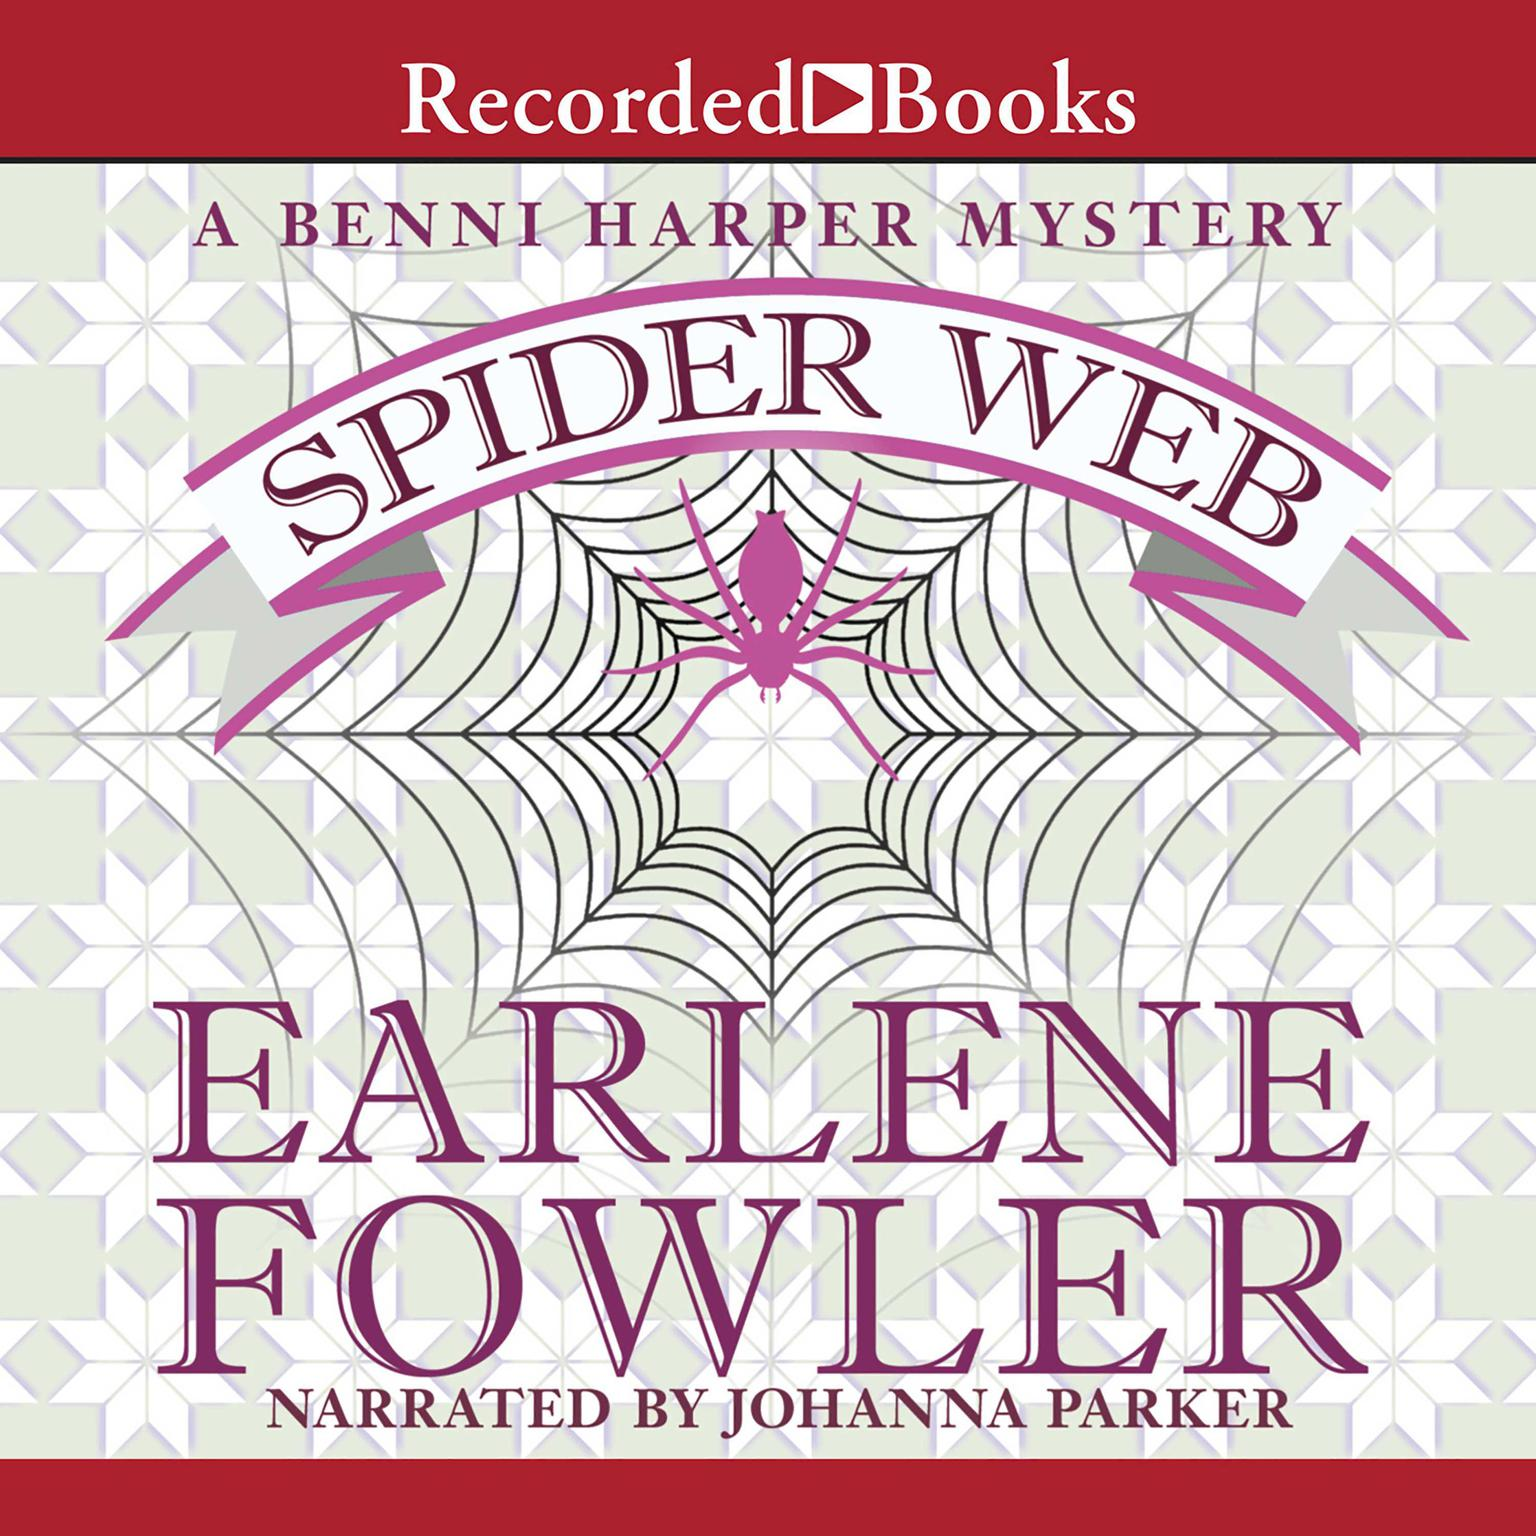 Printable Spider Web Audiobook Cover Art